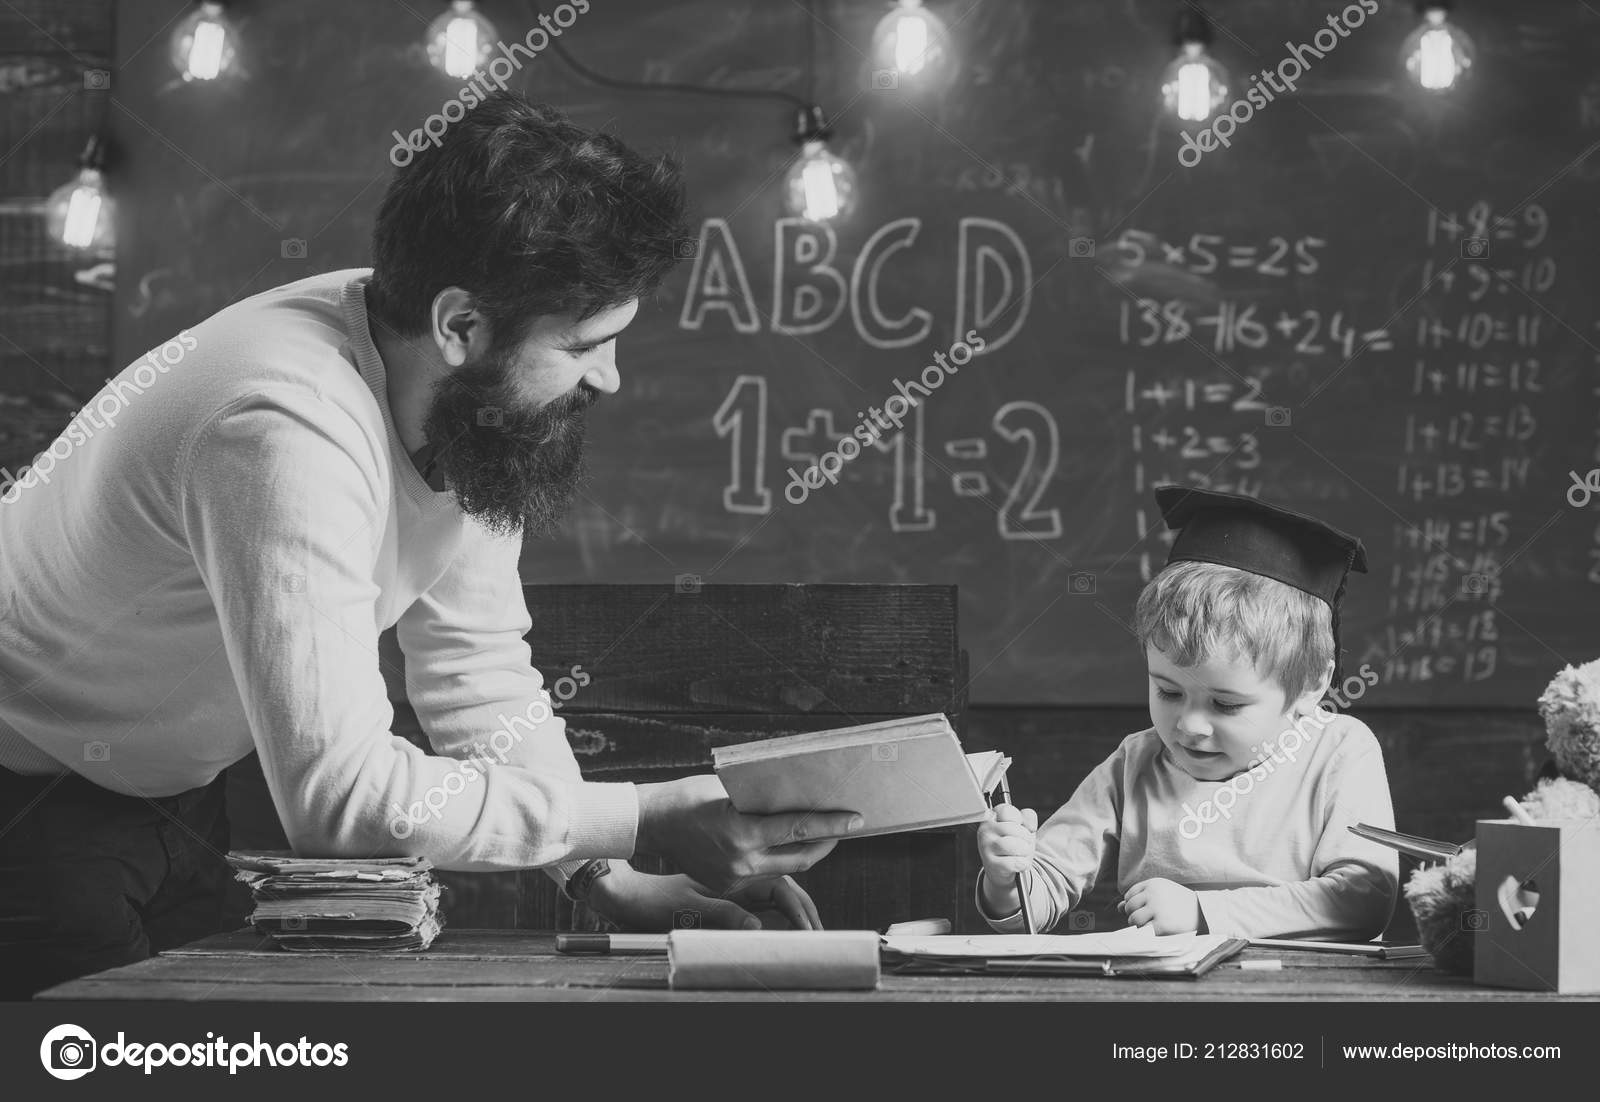 wunderkind and genius concept father teacher reading book